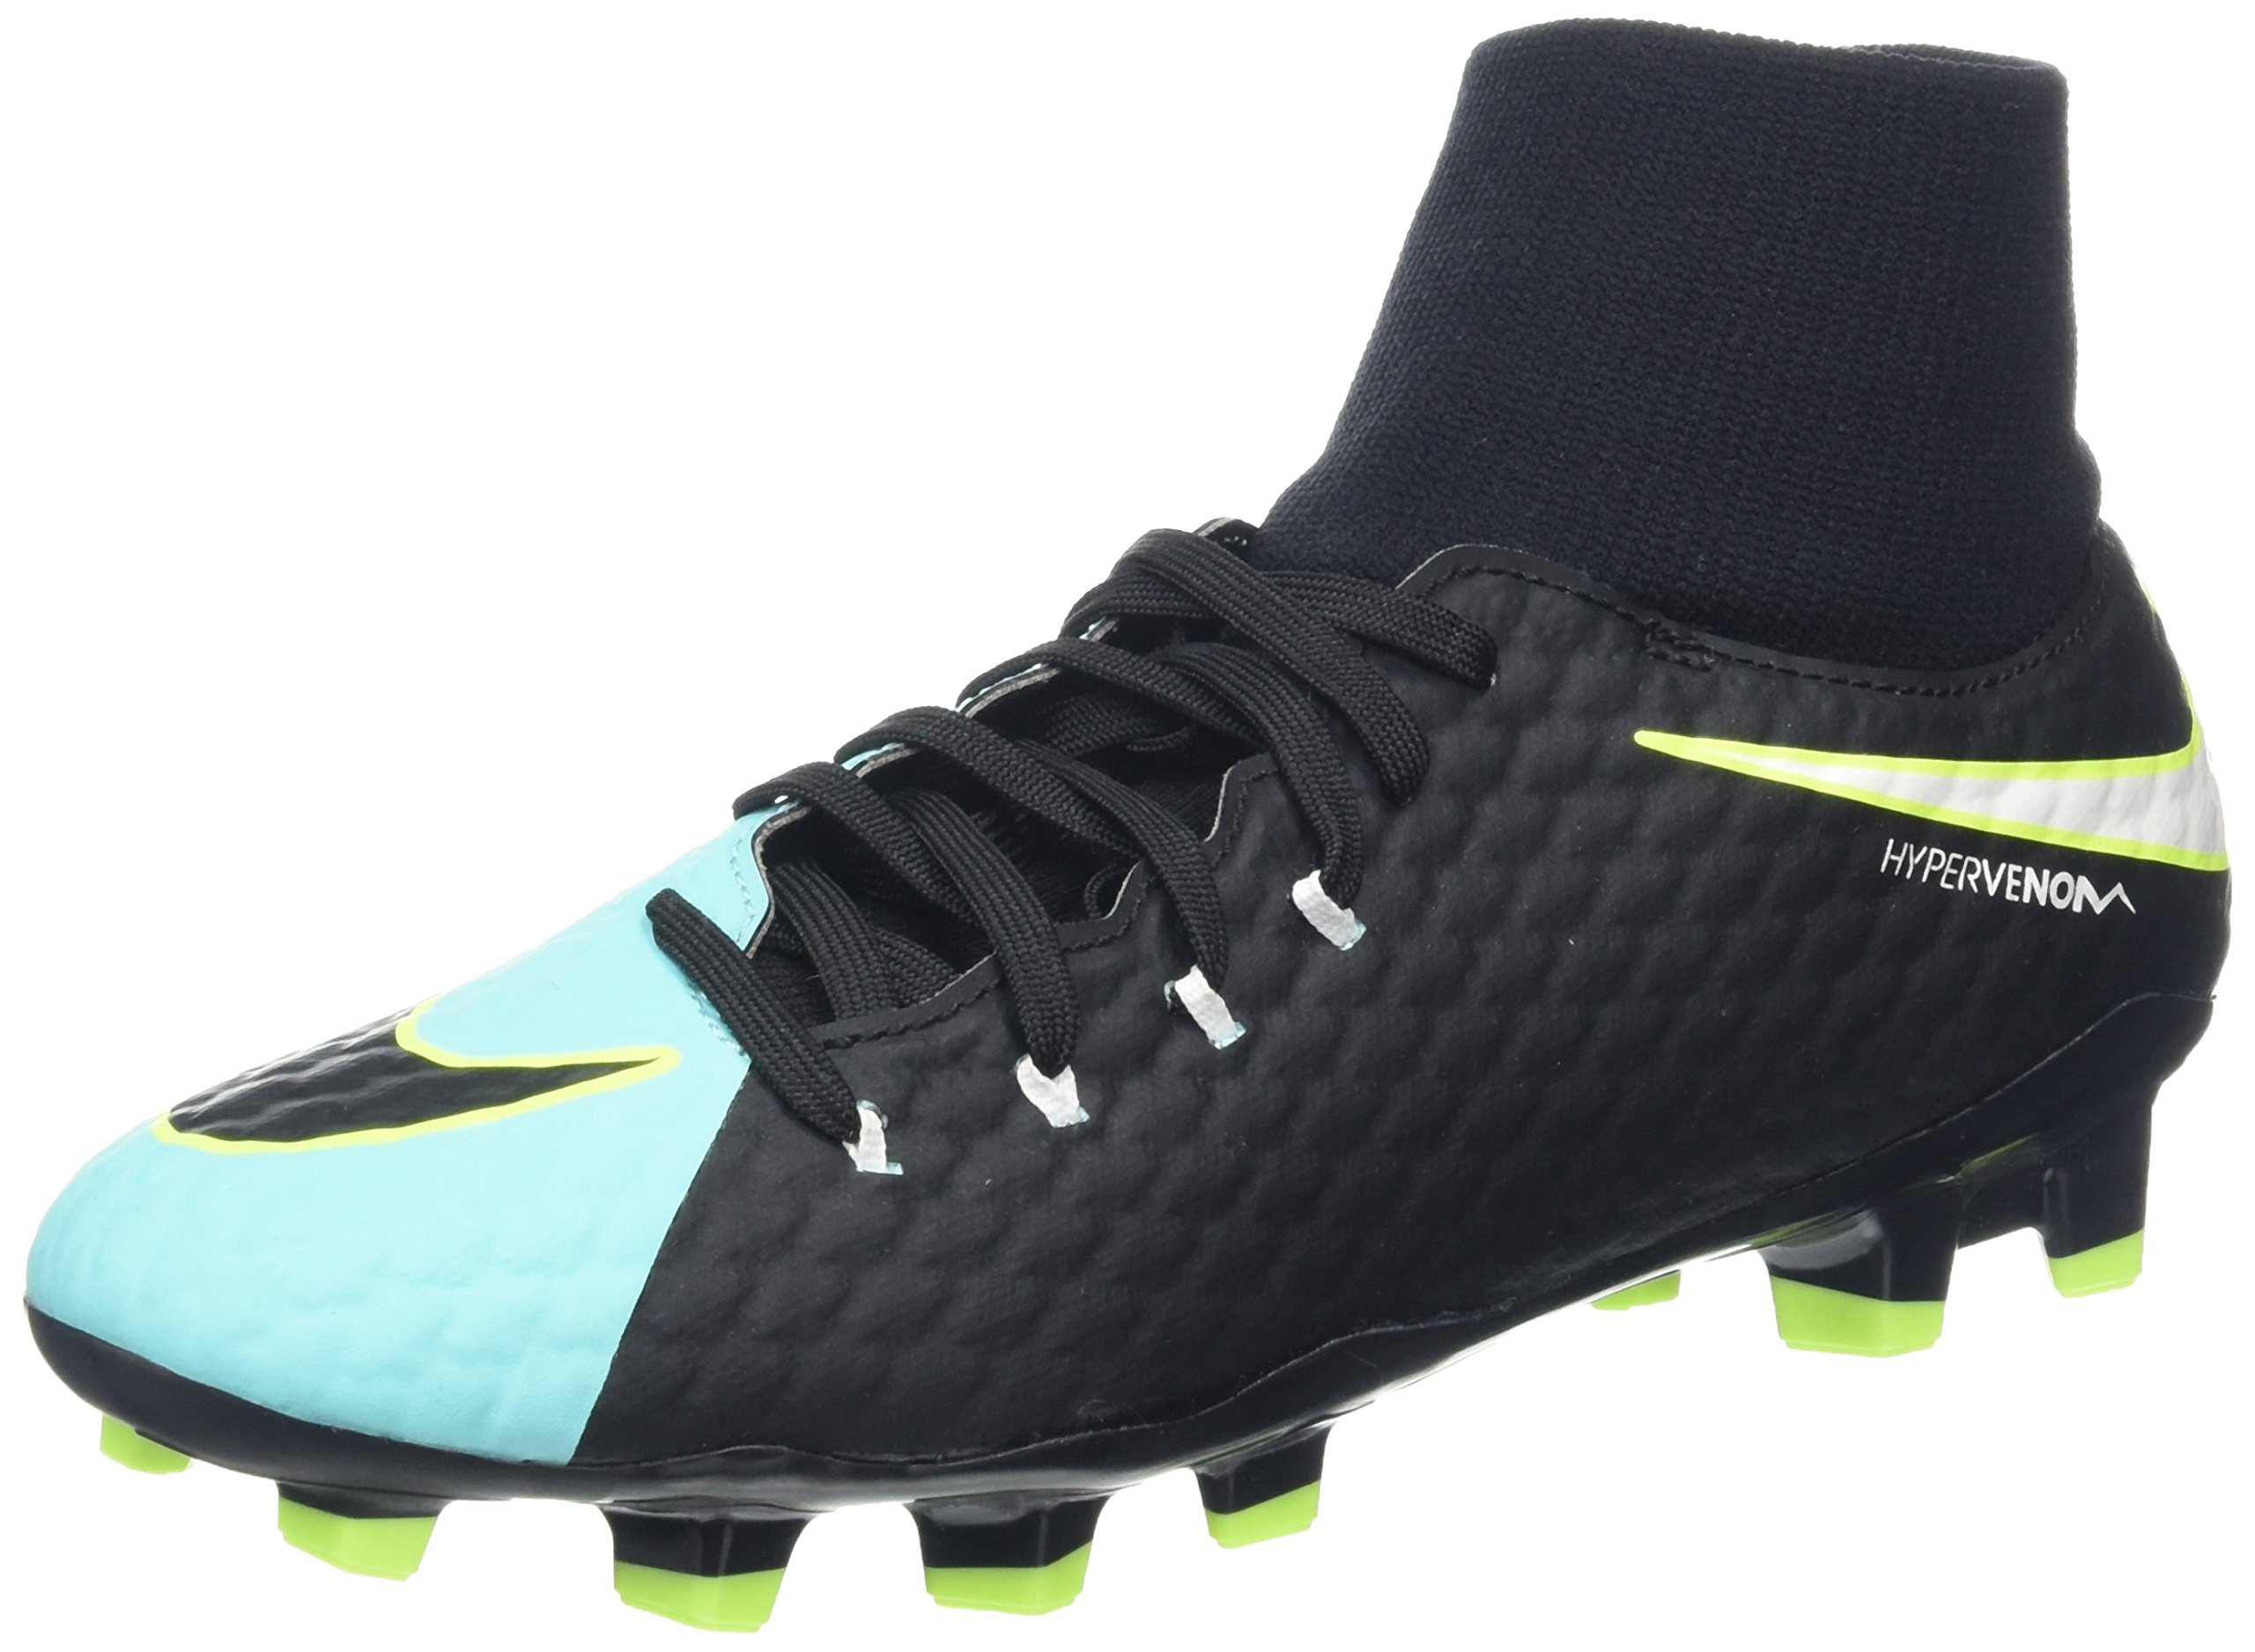 NIKE New Women's Hypervenom Phelon III Dynamic Fit FG Soccer Cleat Aqua/Black 9